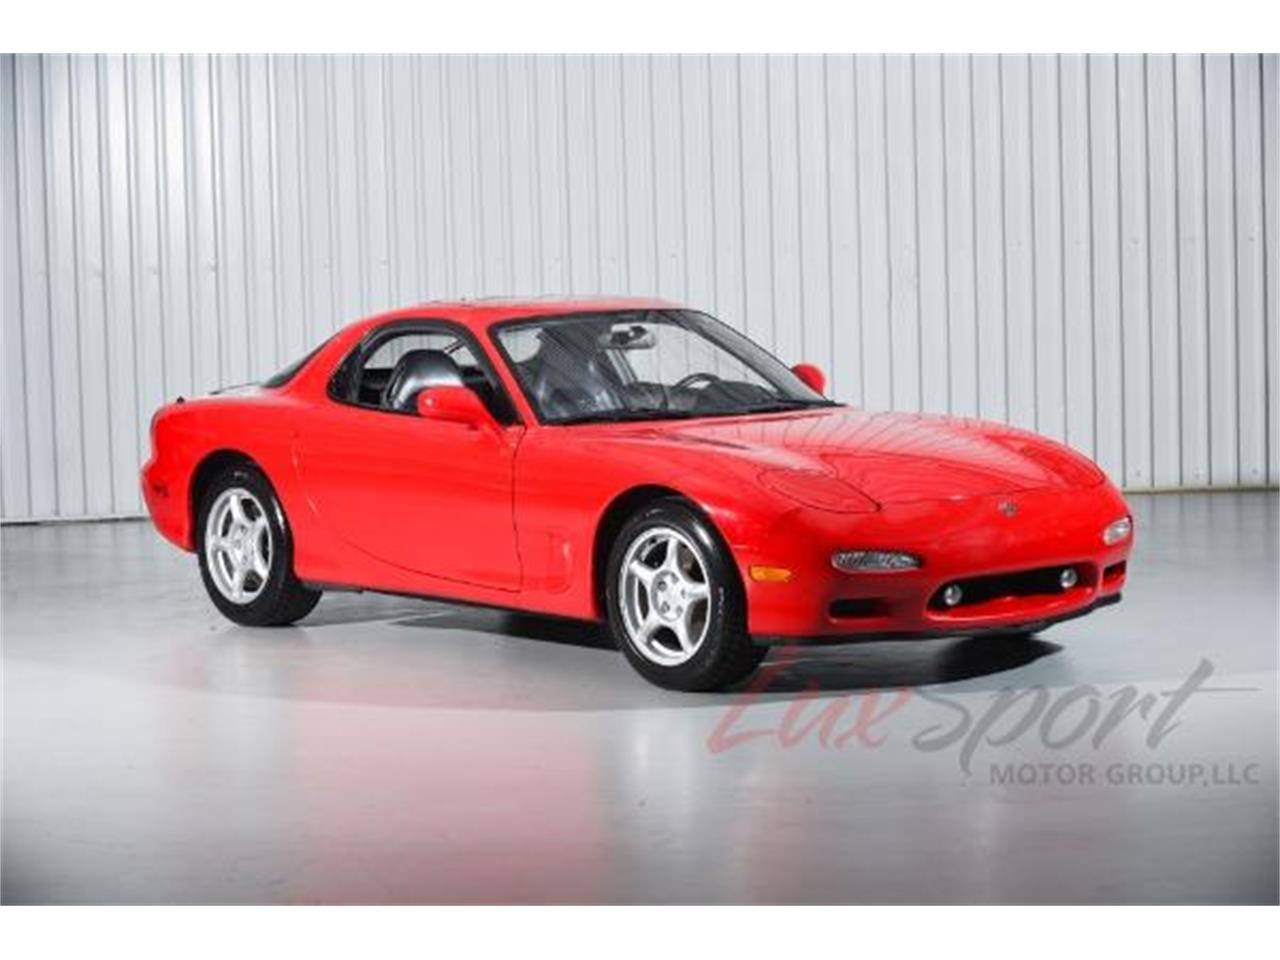 Large Picture of '93 Mazda RX-7 located in New Hyde Park New York Offered by LuxSport Motor Group, LLC - MO02